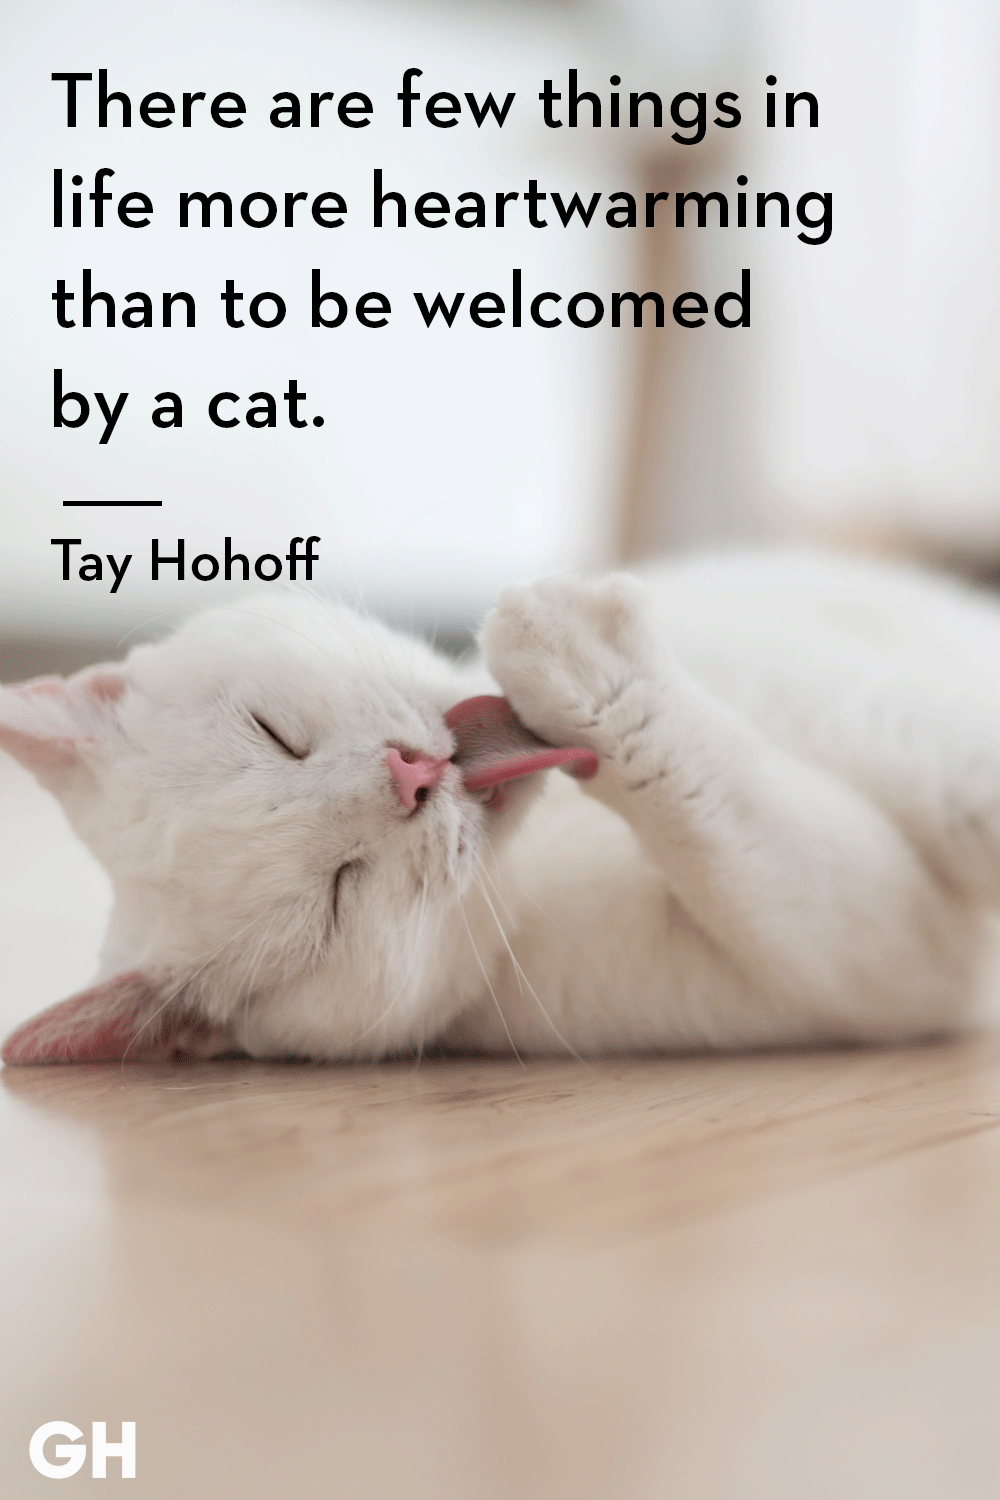 25 Best Cat Quotes That Perfectly Describe Your Kitten - Funny and